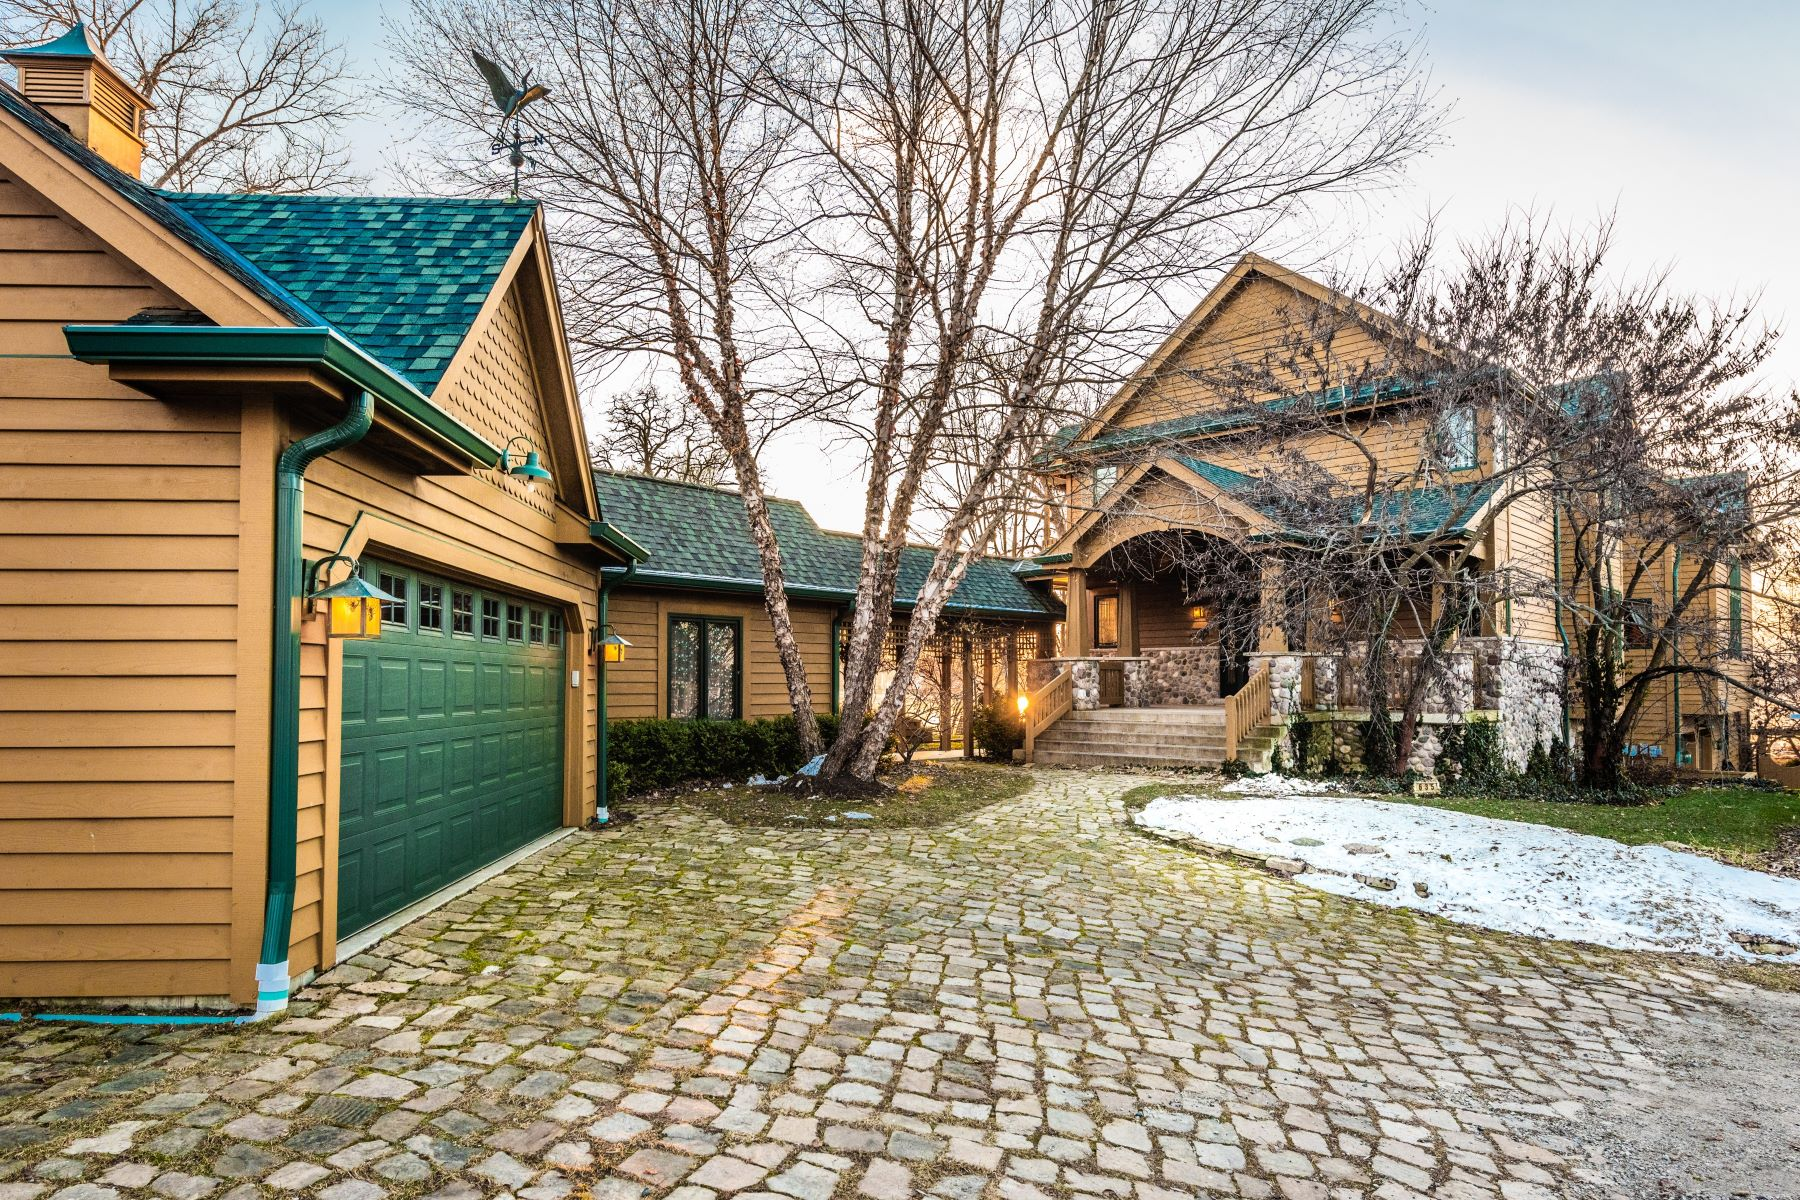 Single Family Home for Active at Bangs Lake Luxury Lodge 635 Lake Shore Blvd Wauconda, Illinois 60084 United States